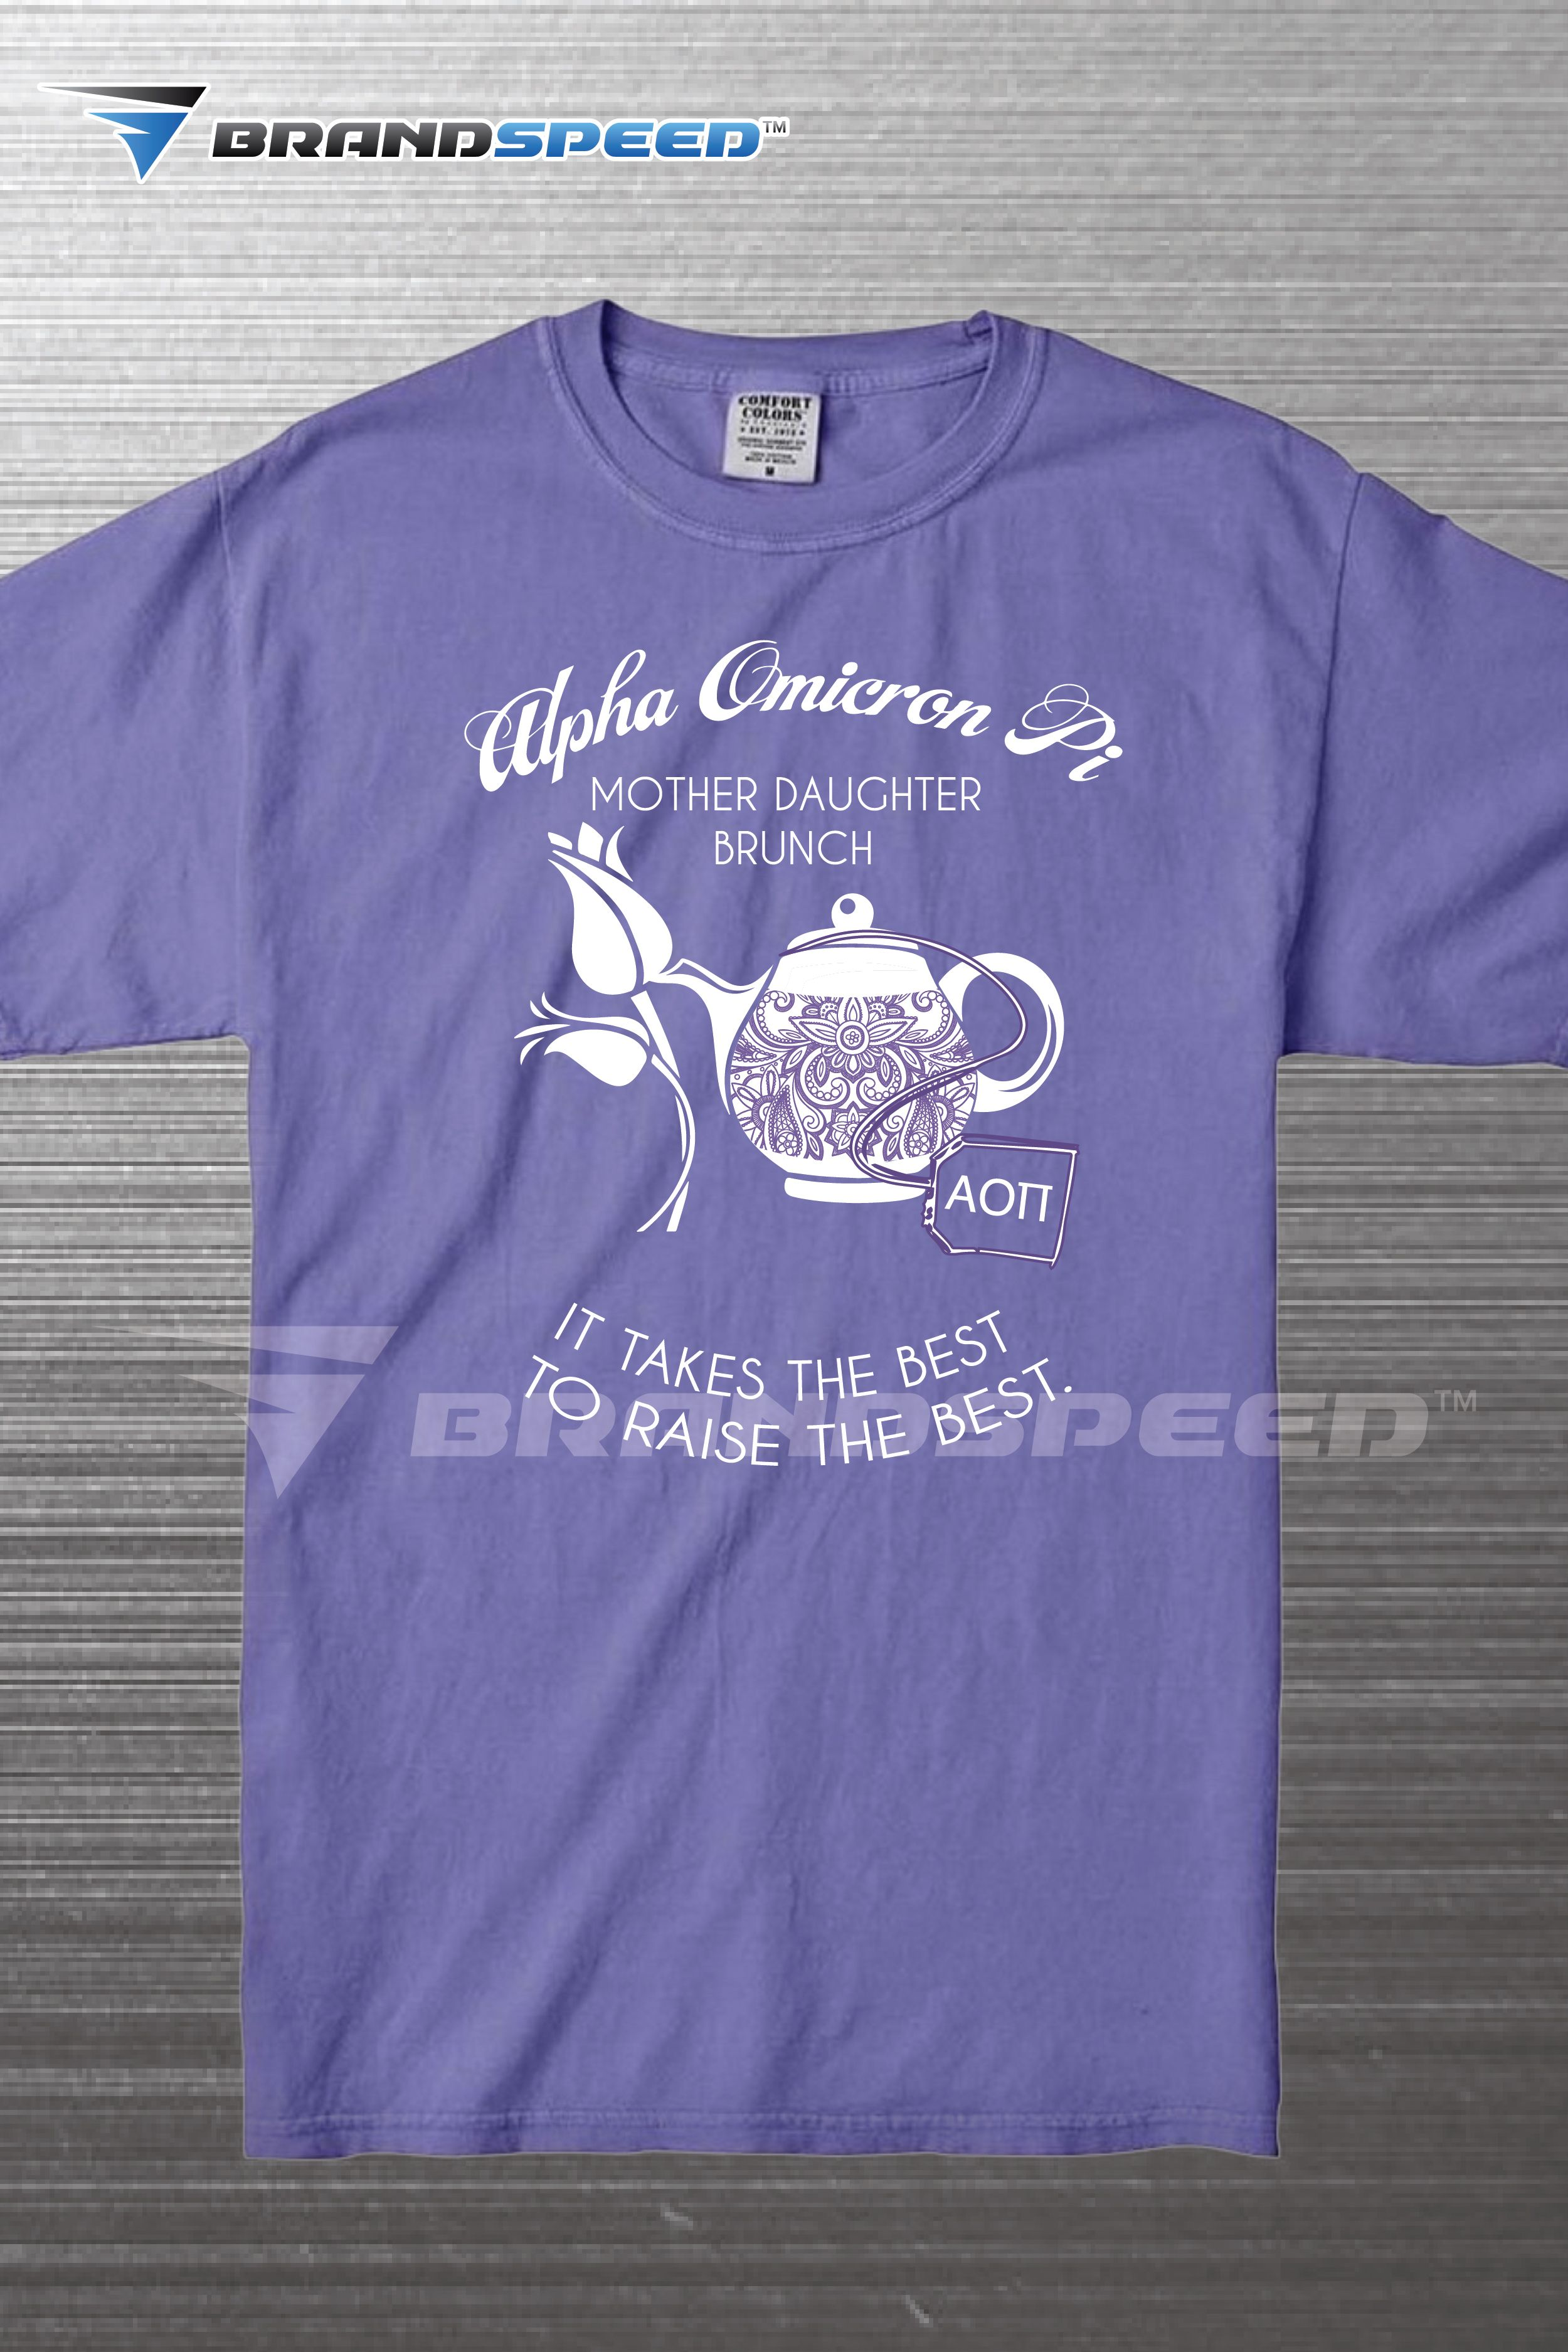 a6a7c91f0 This one color screen printed design was printed on Comfort Colors tee  shirts for a Sorority's tea party themed mother-daughter brunch.